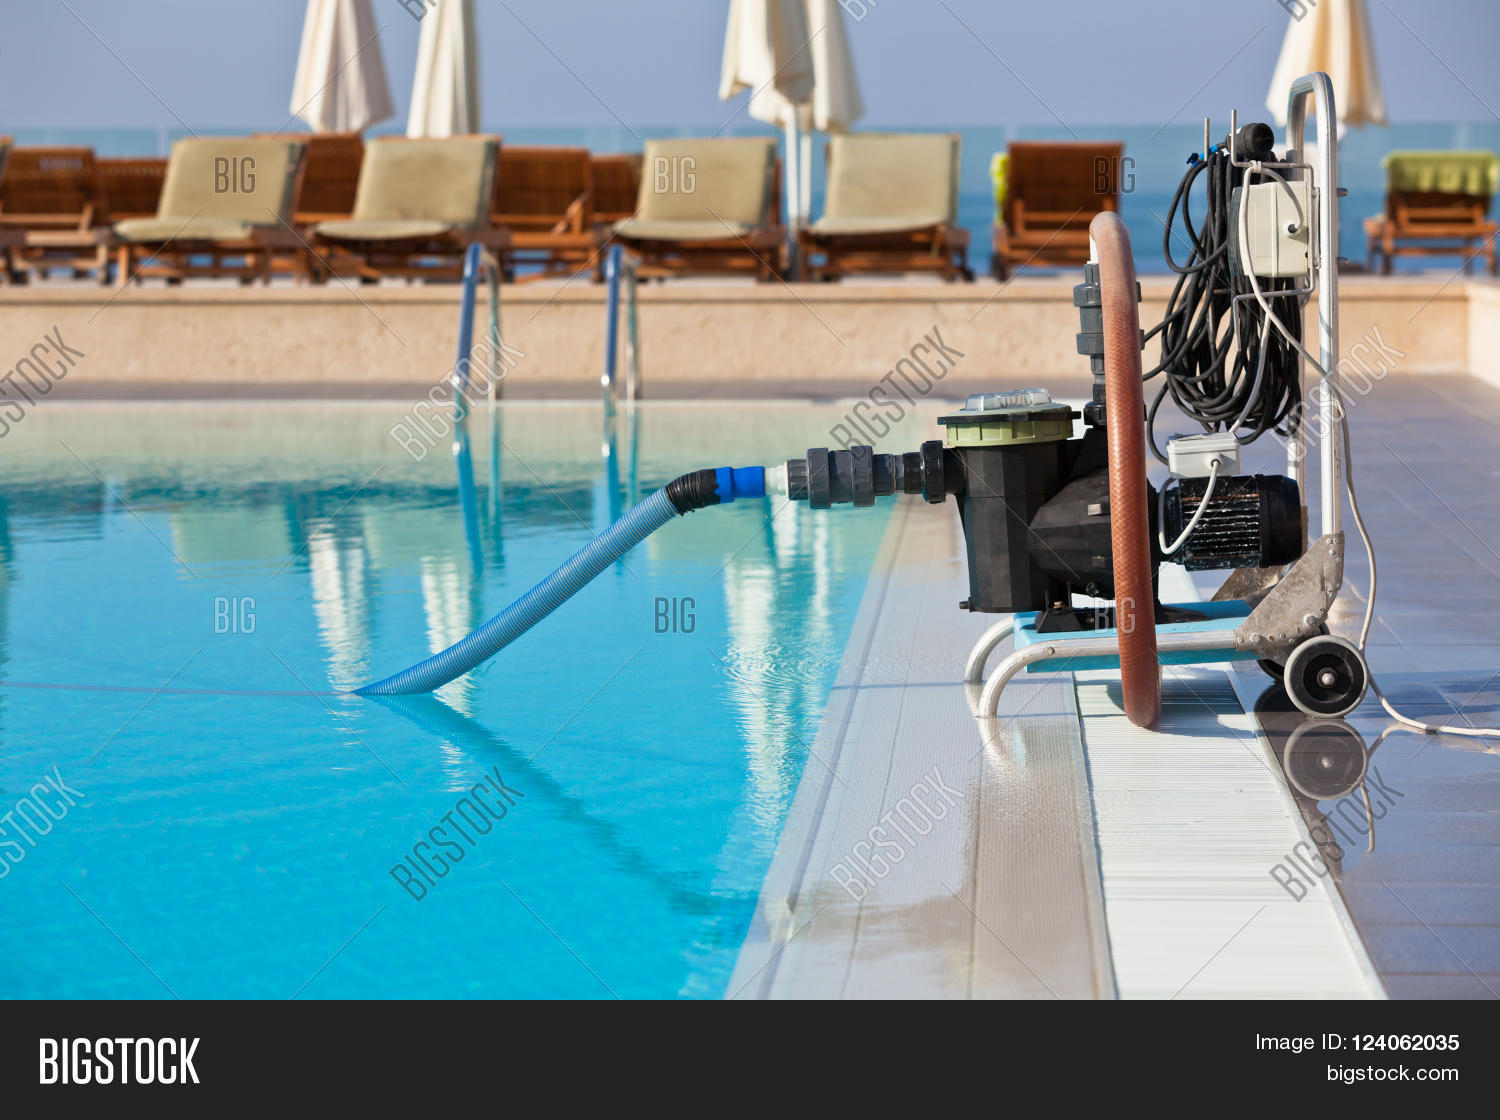 Cleaning Swimming Pool Pump : Cleaning pump working with a swimming pool horizontal